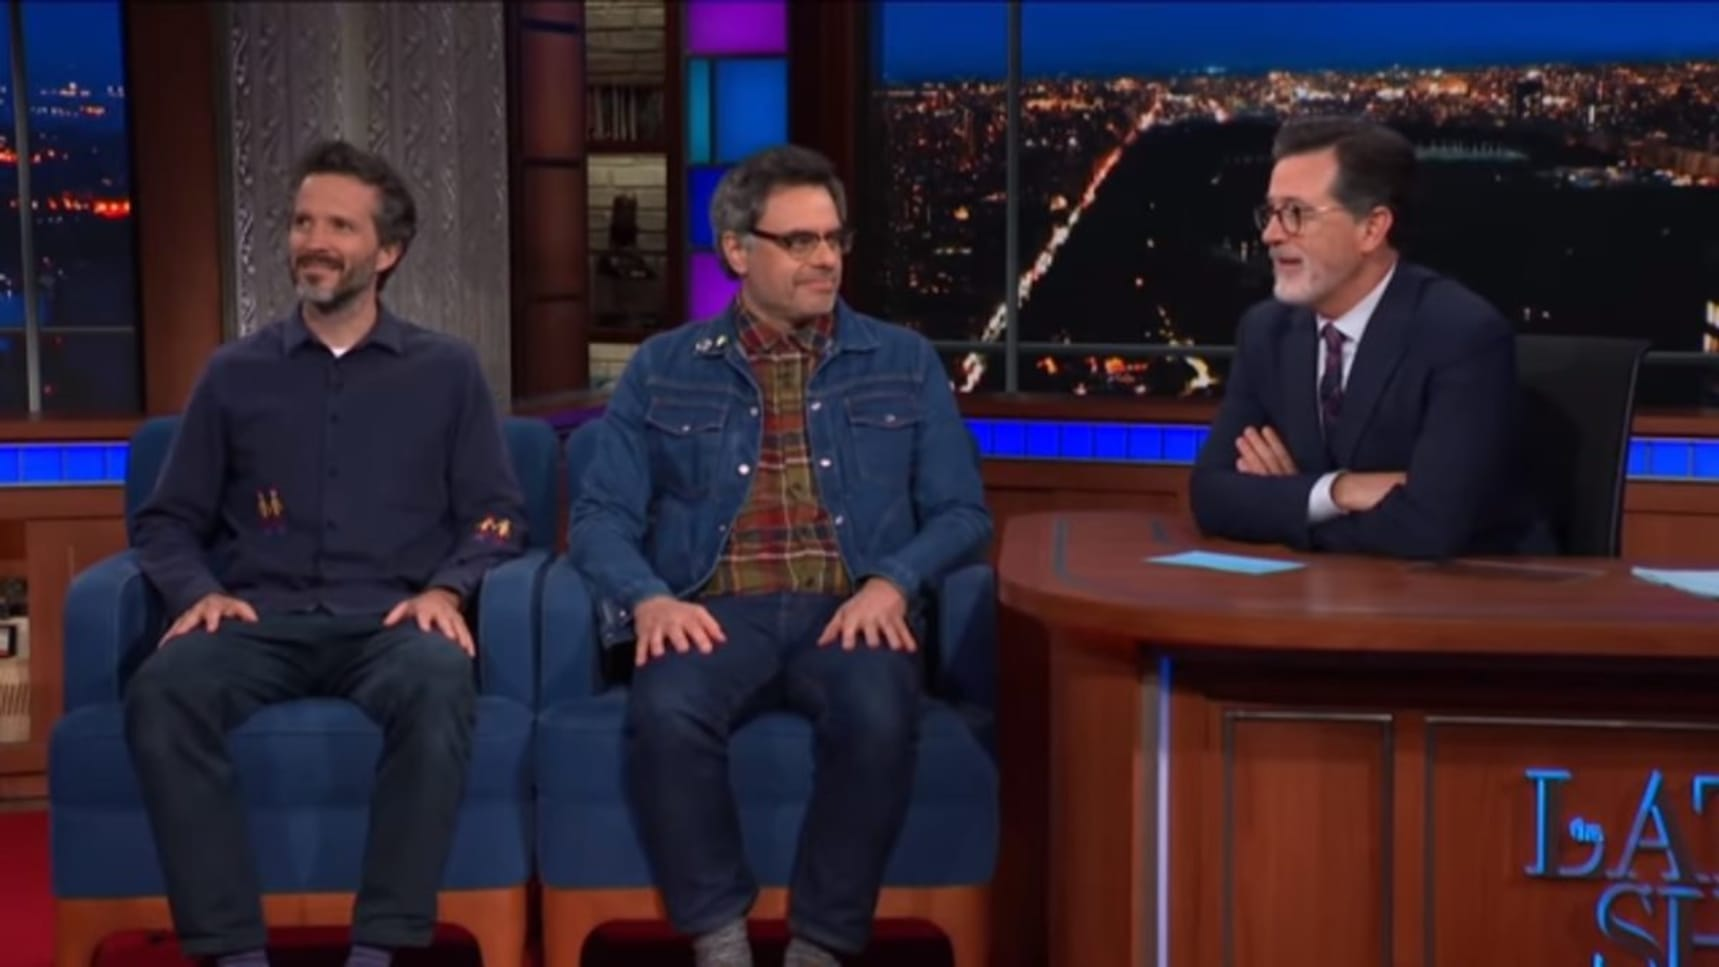 Flight Of The Conchords Perform On The Late Show With Stephen